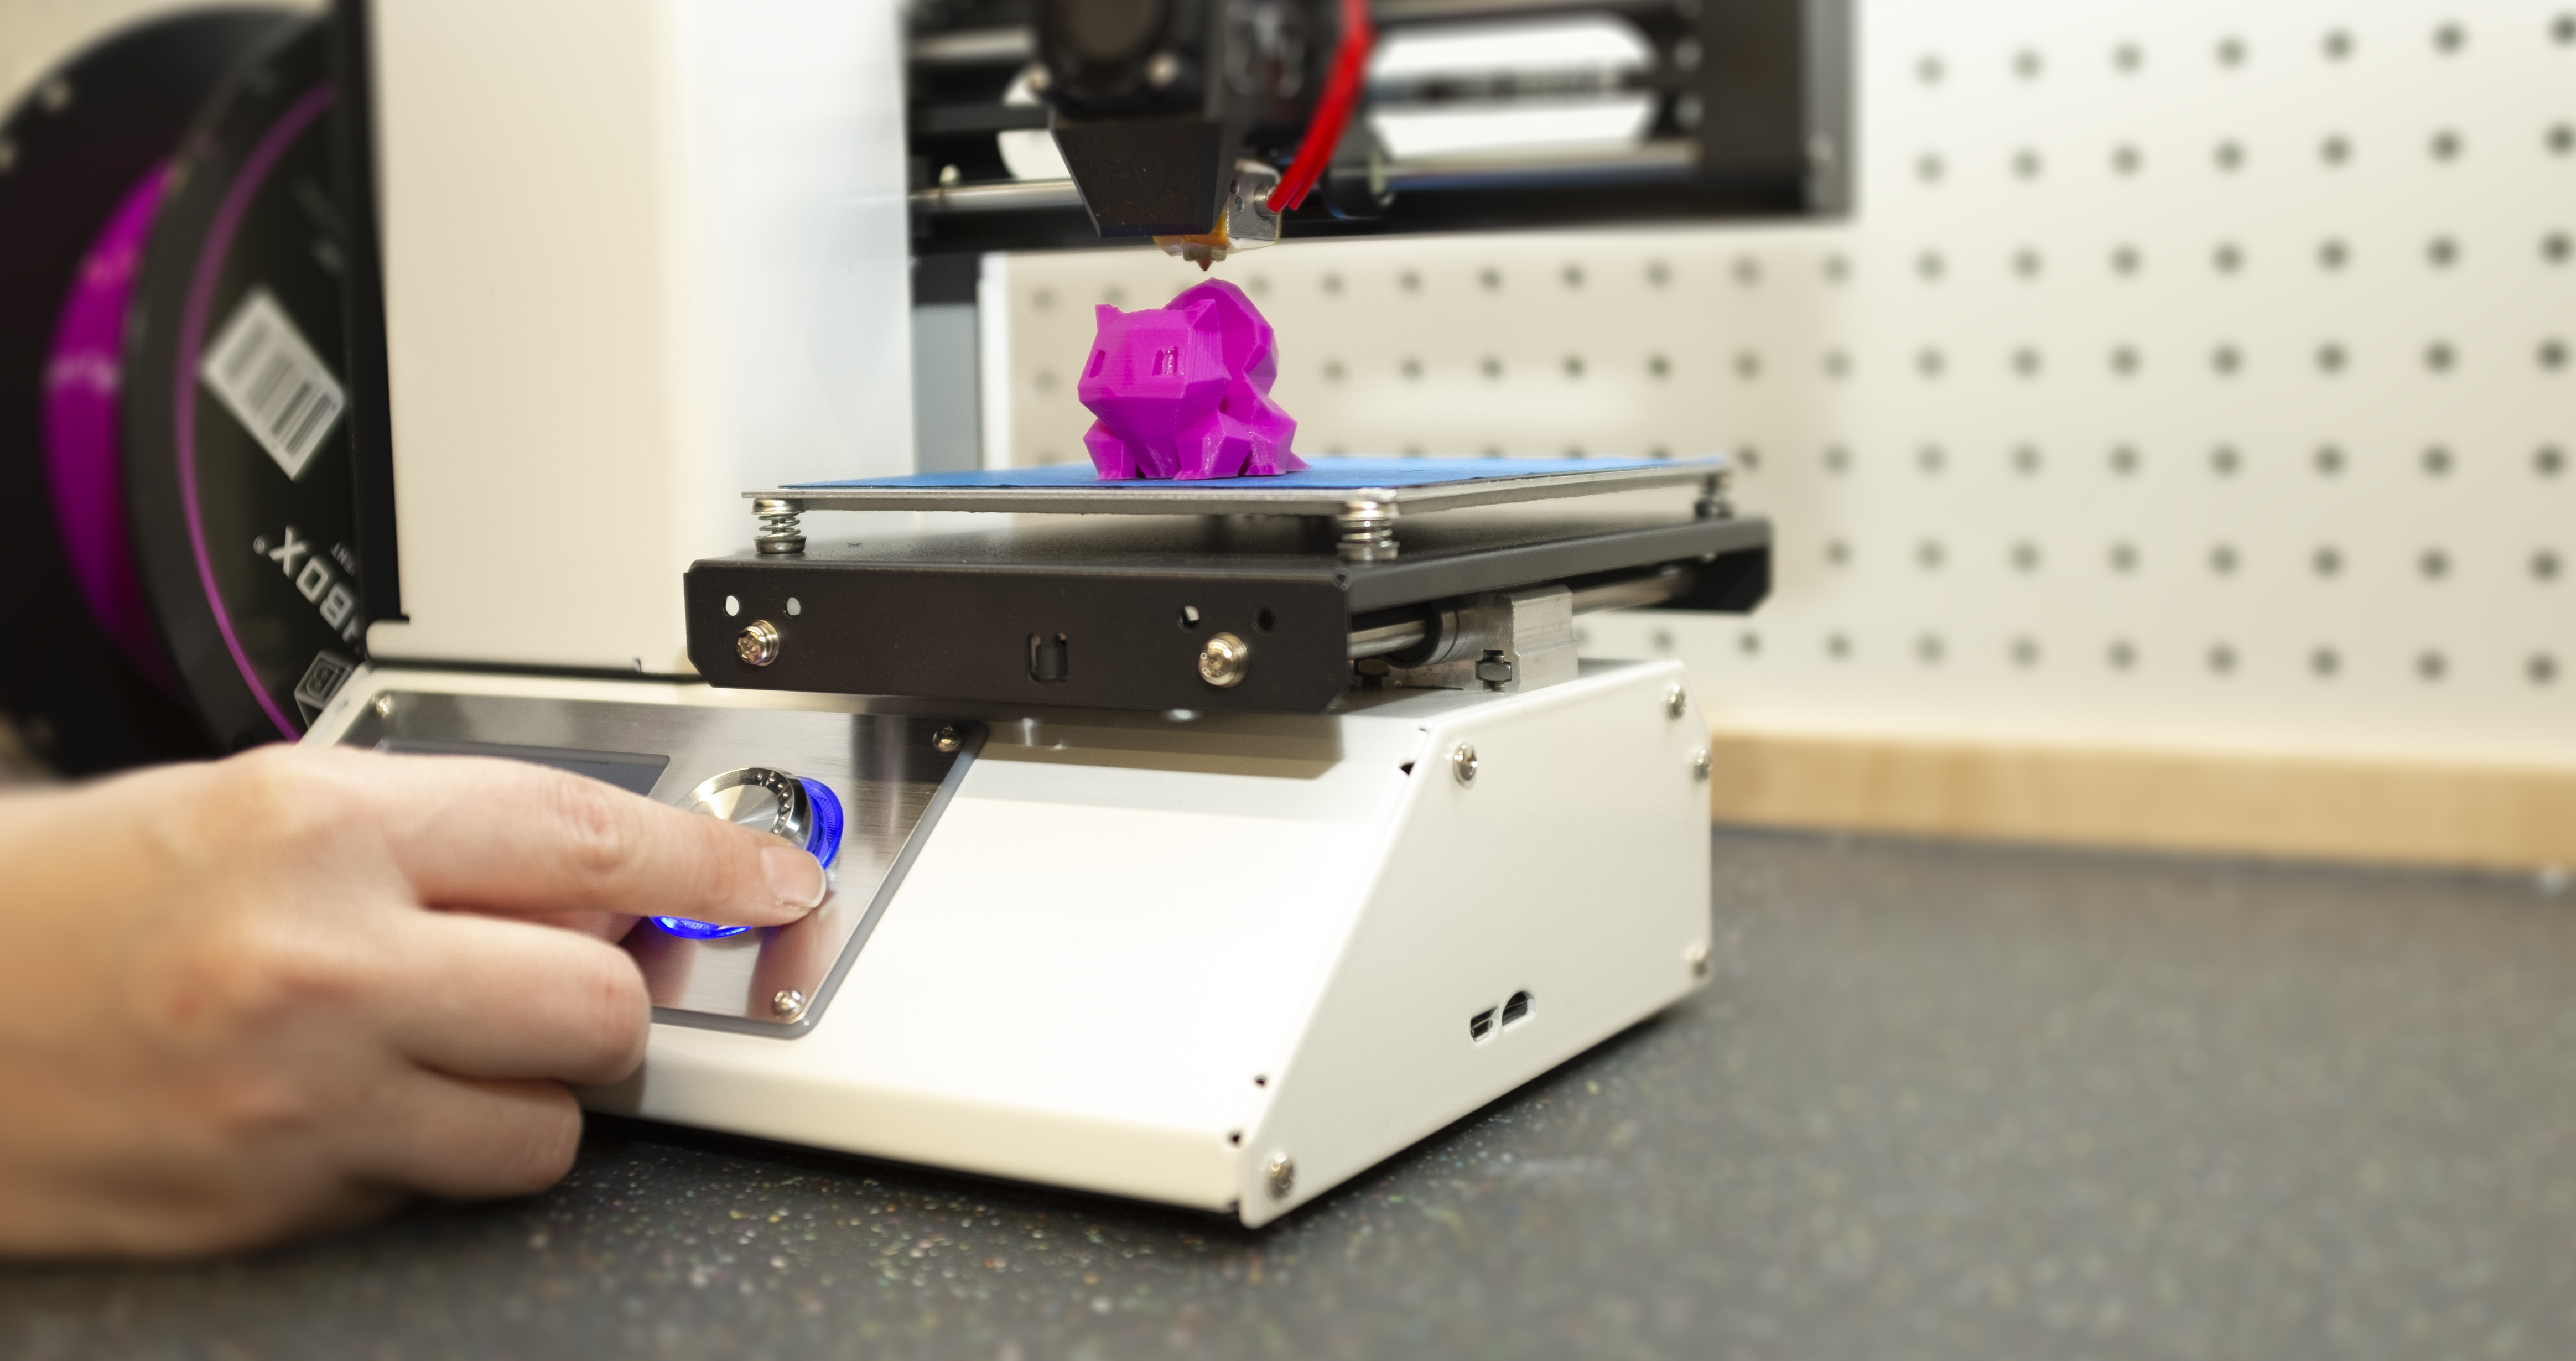 Shop Class: Introduction to 3D Design and 3D Printing